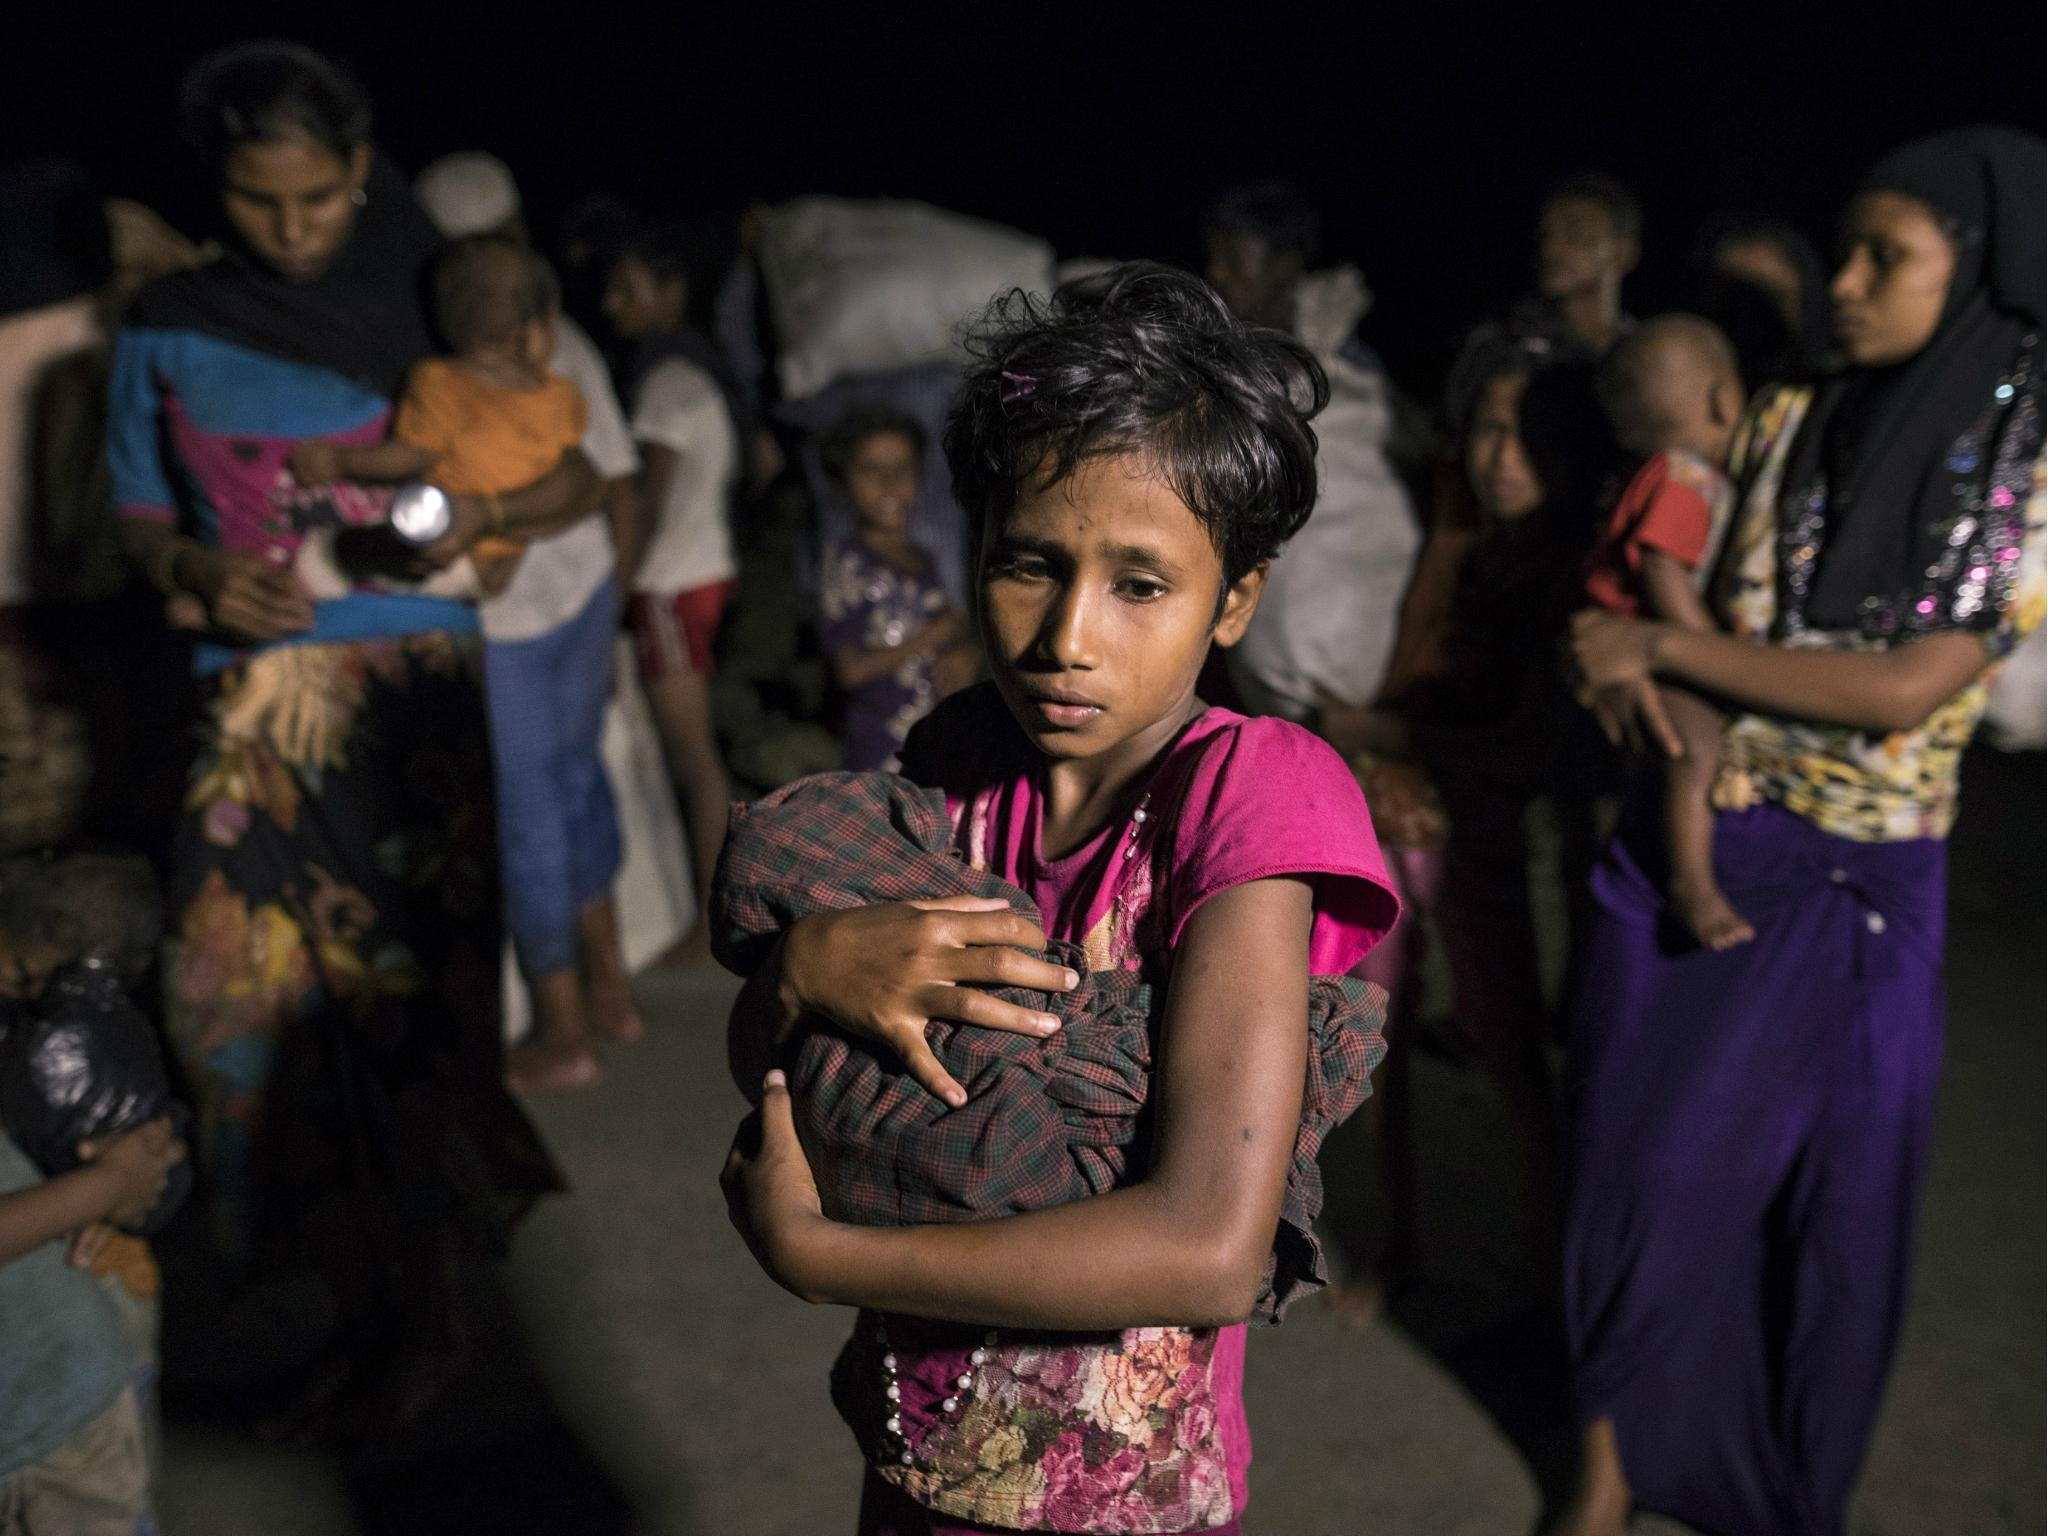 Nearly 340,000 Rohingya children 'outcast and desperate' in squalid Bangladesh camps, Unicef warns